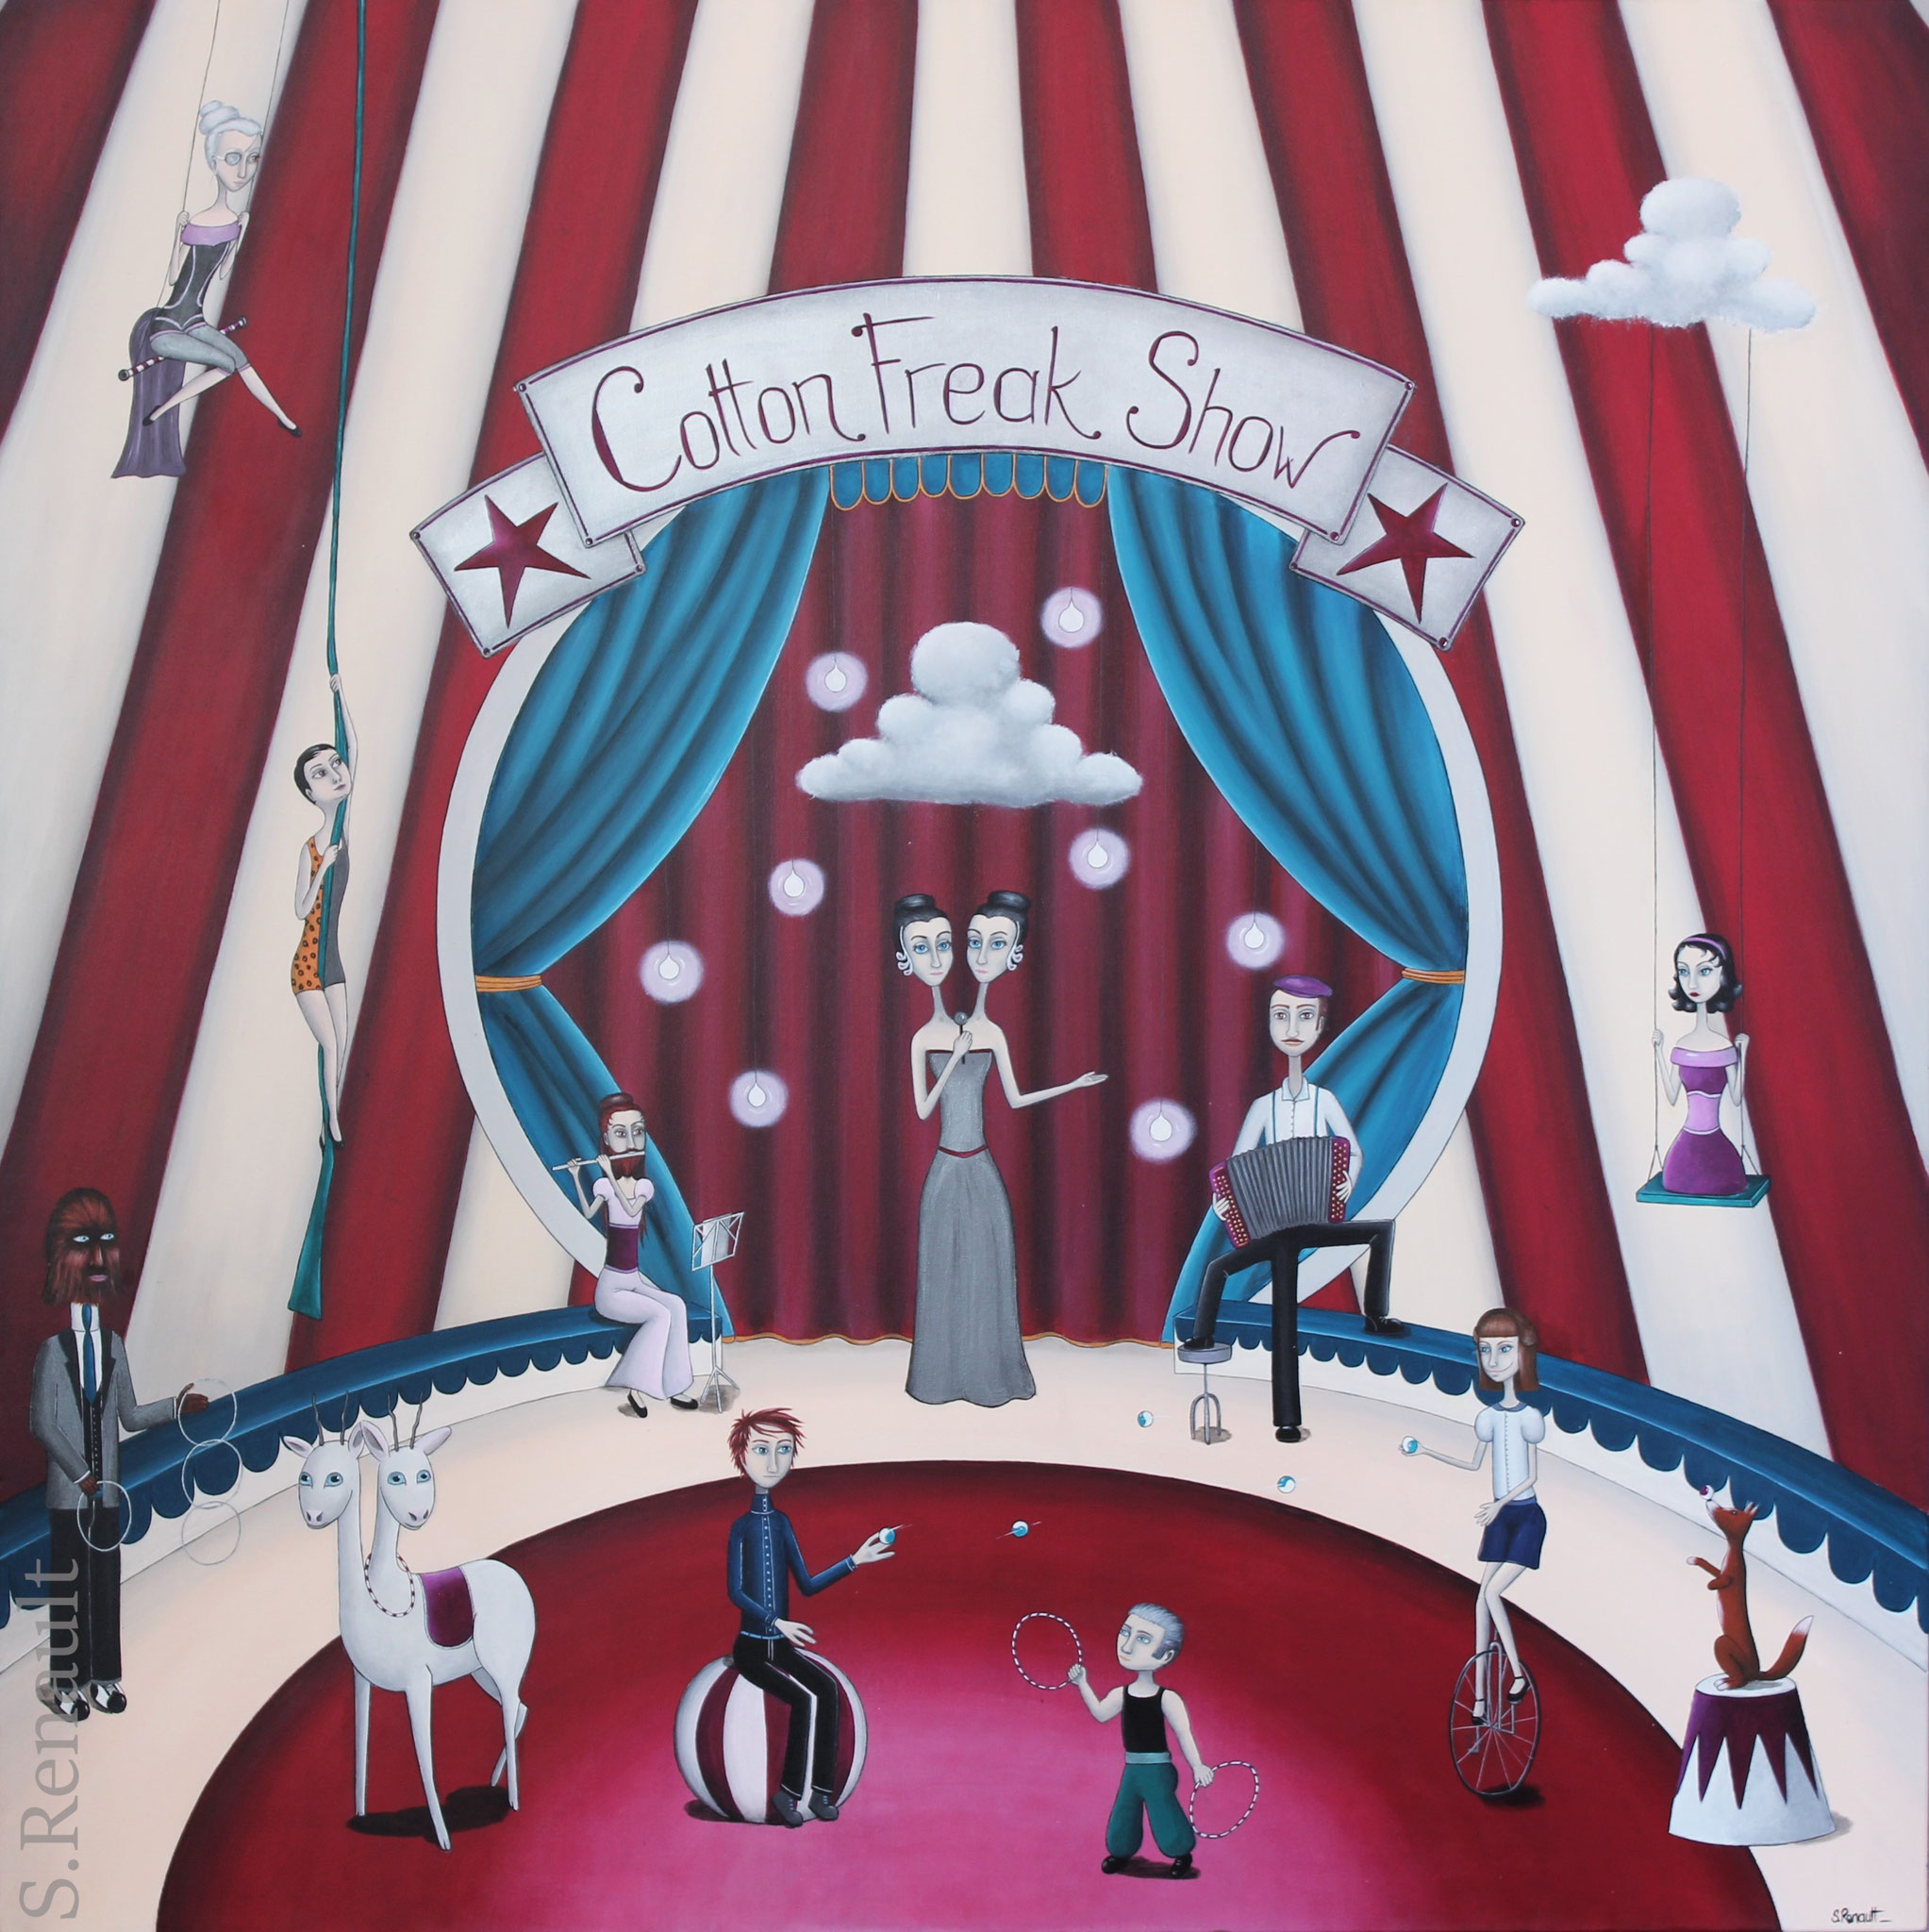 Cotton Freak Show (120x120 cm) 2016